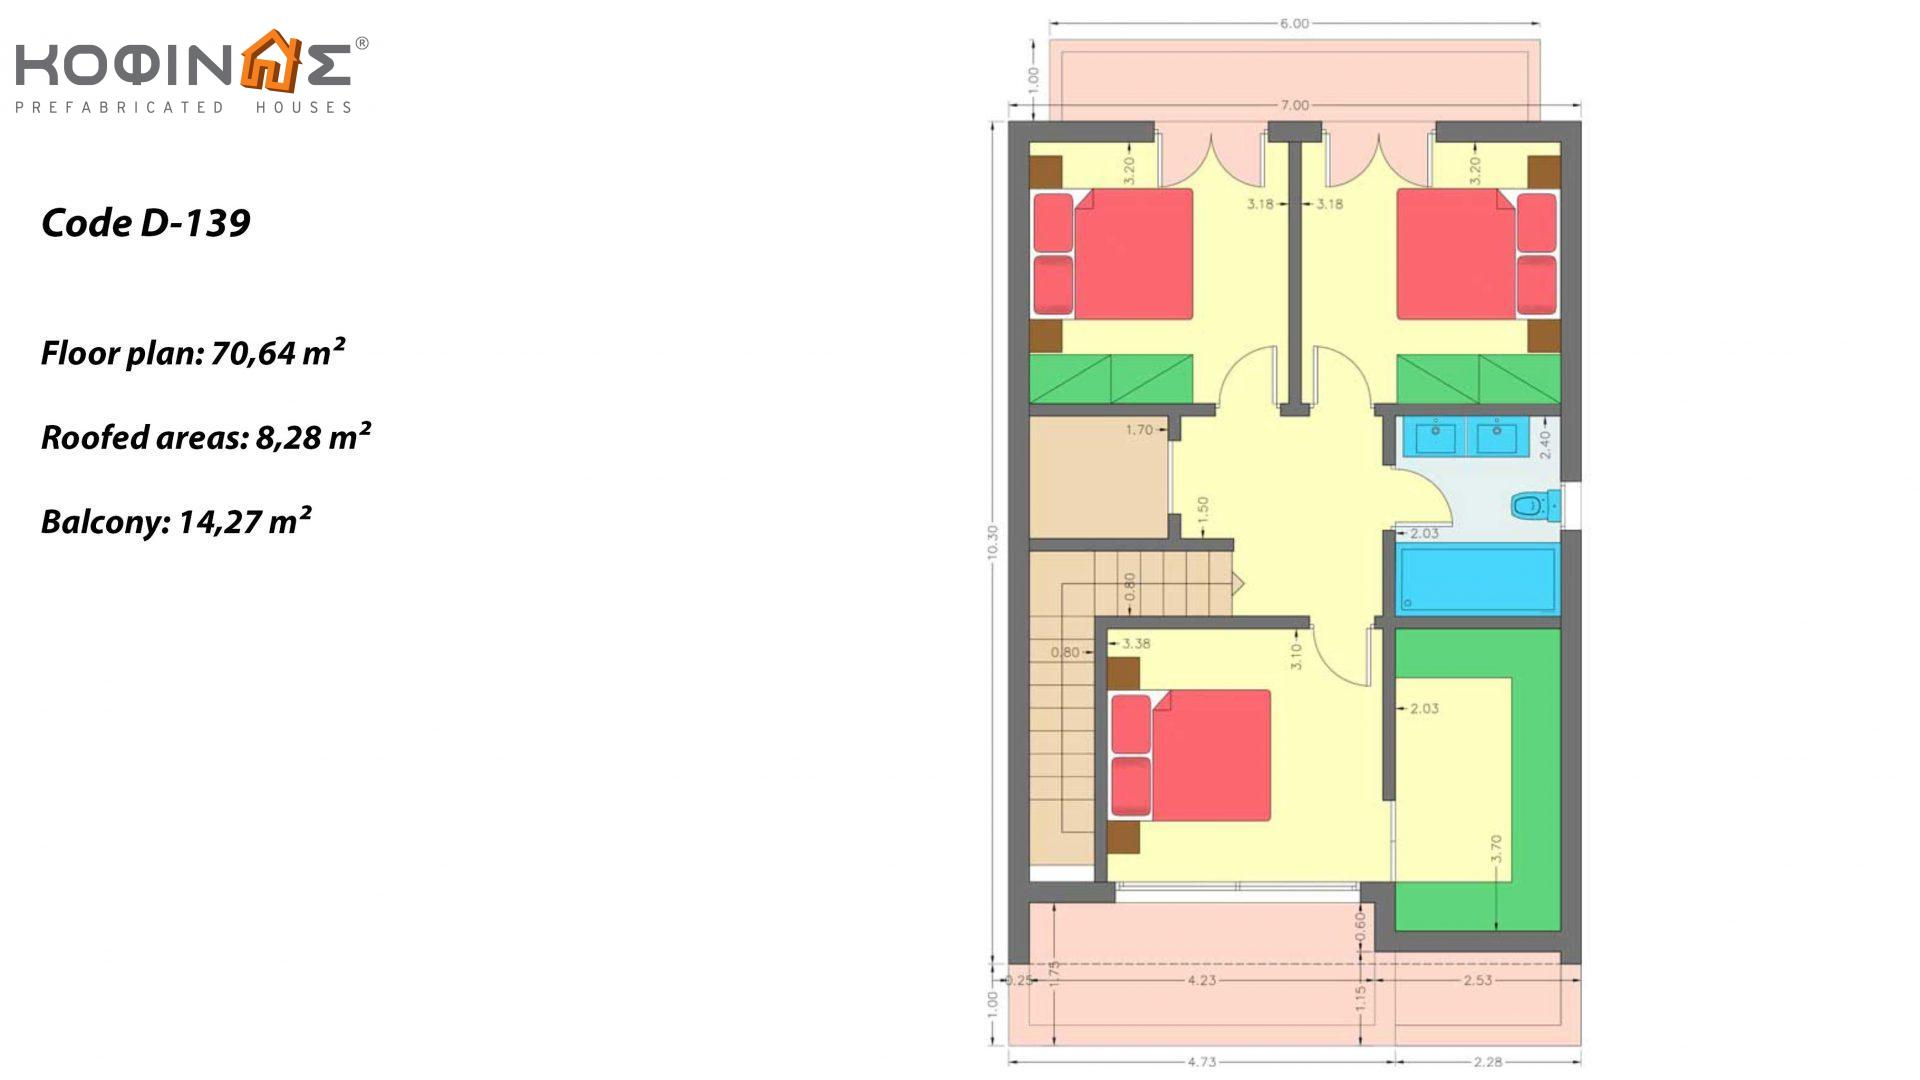 2-story house D-139, total surface of 139,00 m² ,roofed areas19.88 m²,balconies 14.27 m²